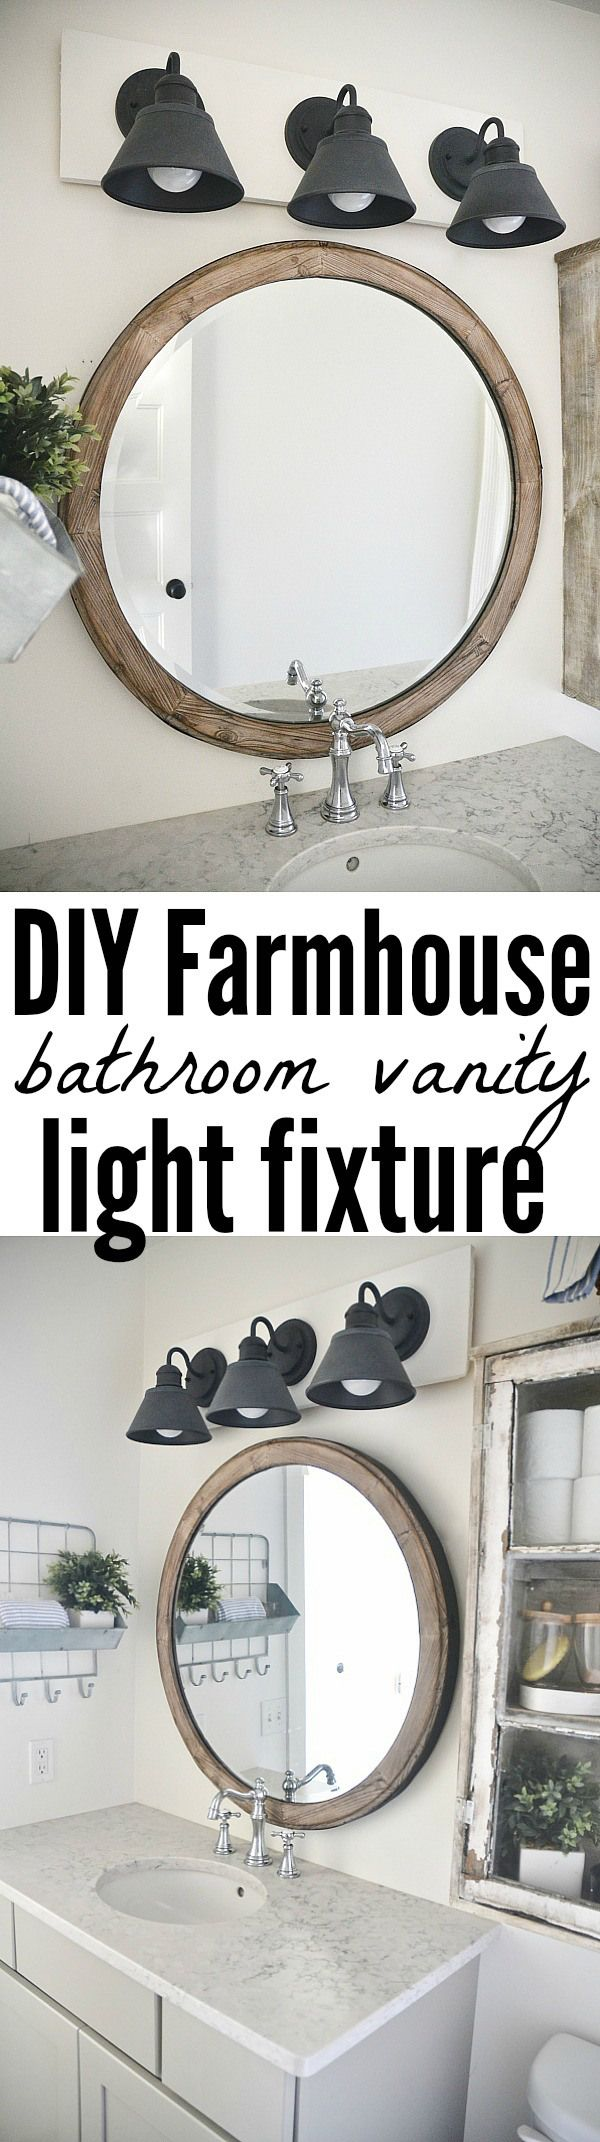 diy bathroom vanity light woodworking projects plans. Black Bedroom Furniture Sets. Home Design Ideas